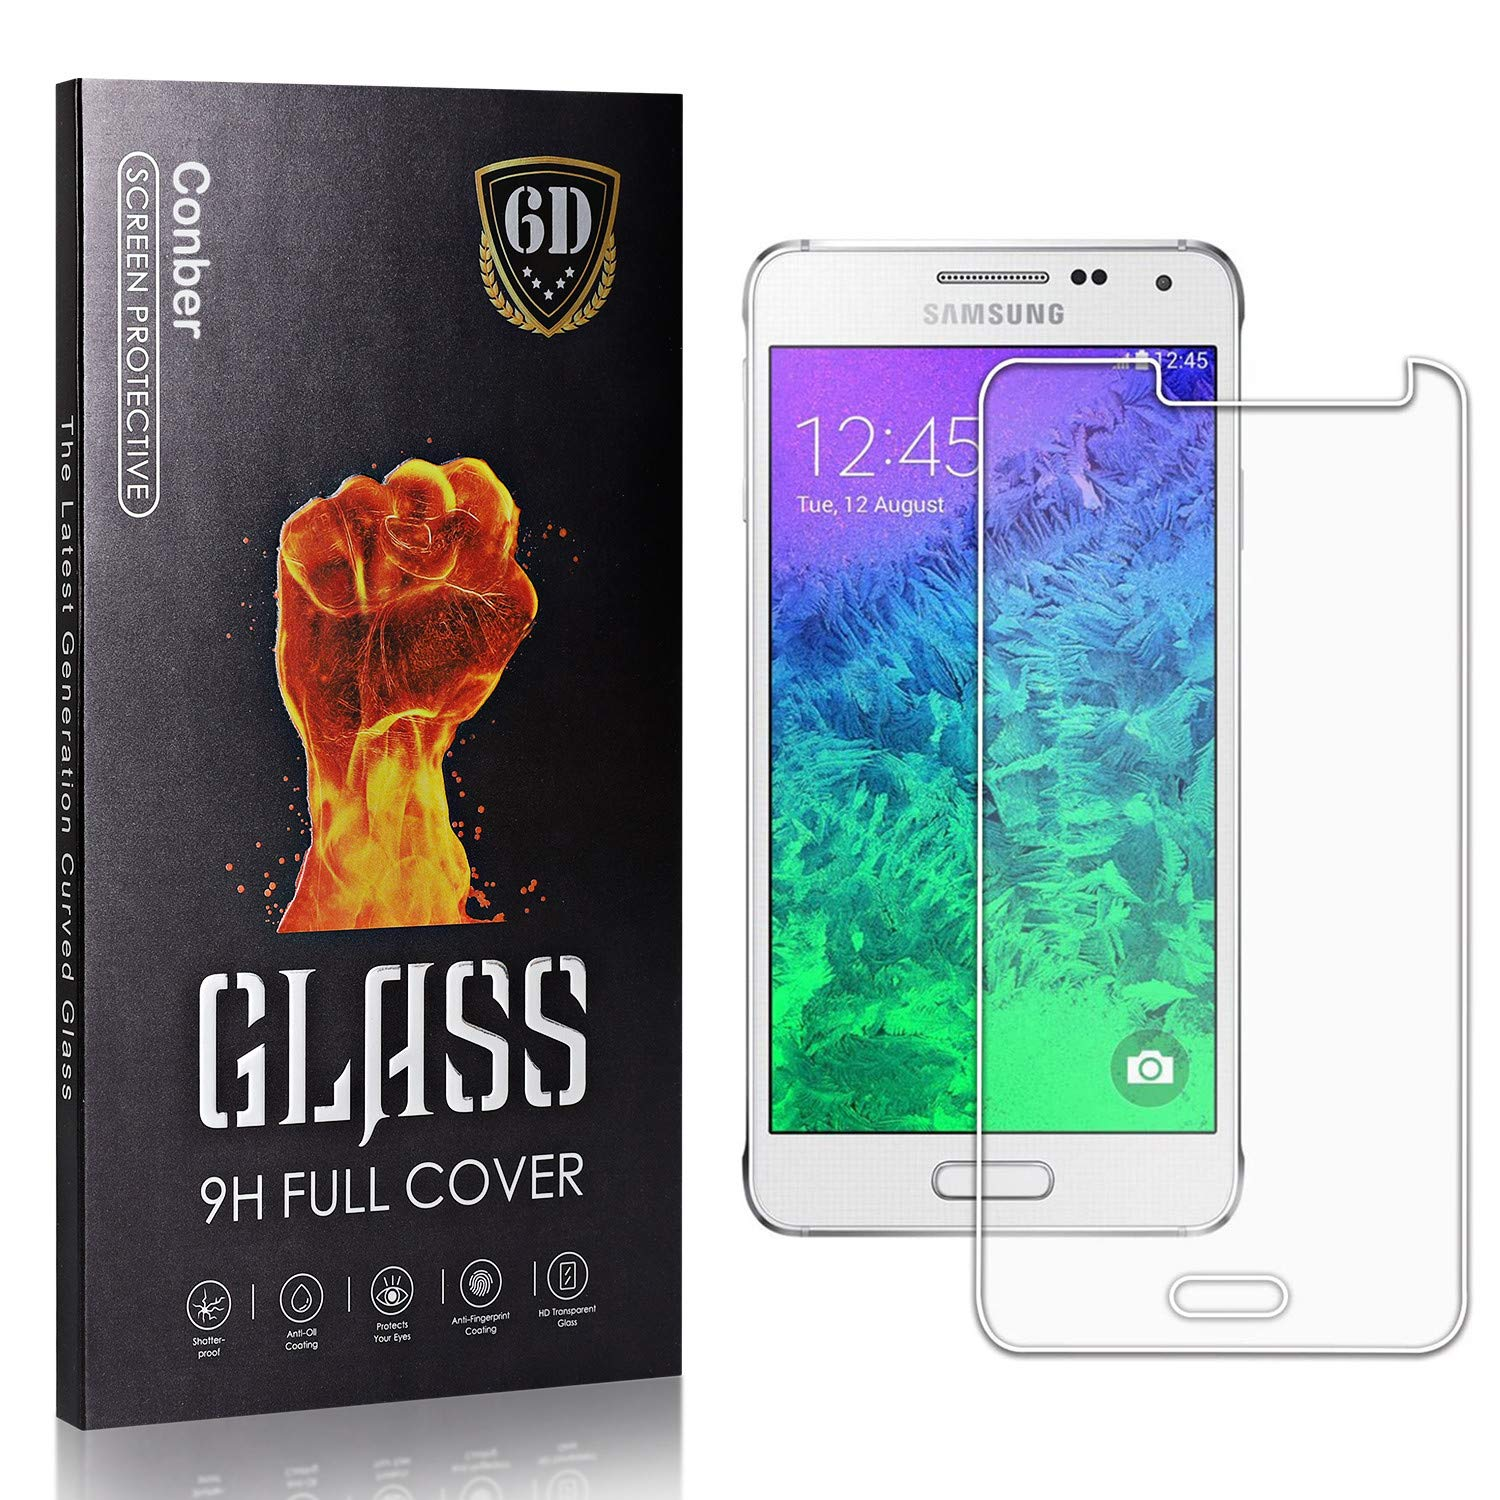 Conber Spasm price 4 Pack Screen Protector G850F Galaxy Alpha wholesale Samsung for